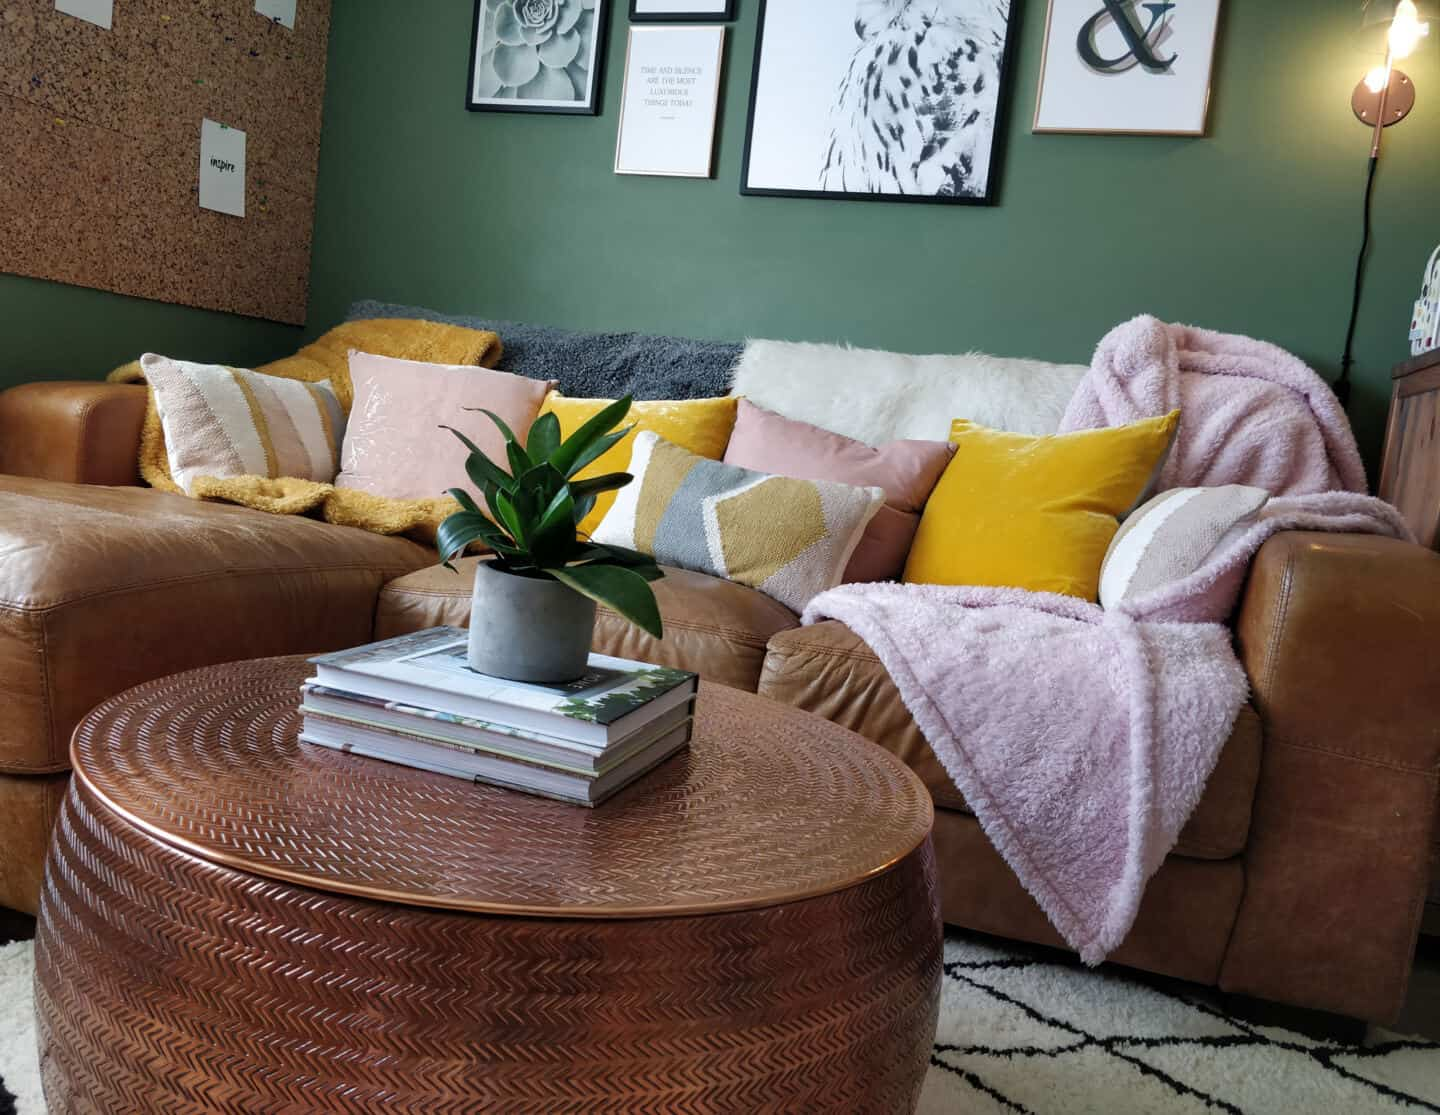 Autumn home updates with Habitat. A living room featuring a brown leather sofa, copper coffee table and pink and yellow velvet cushions.